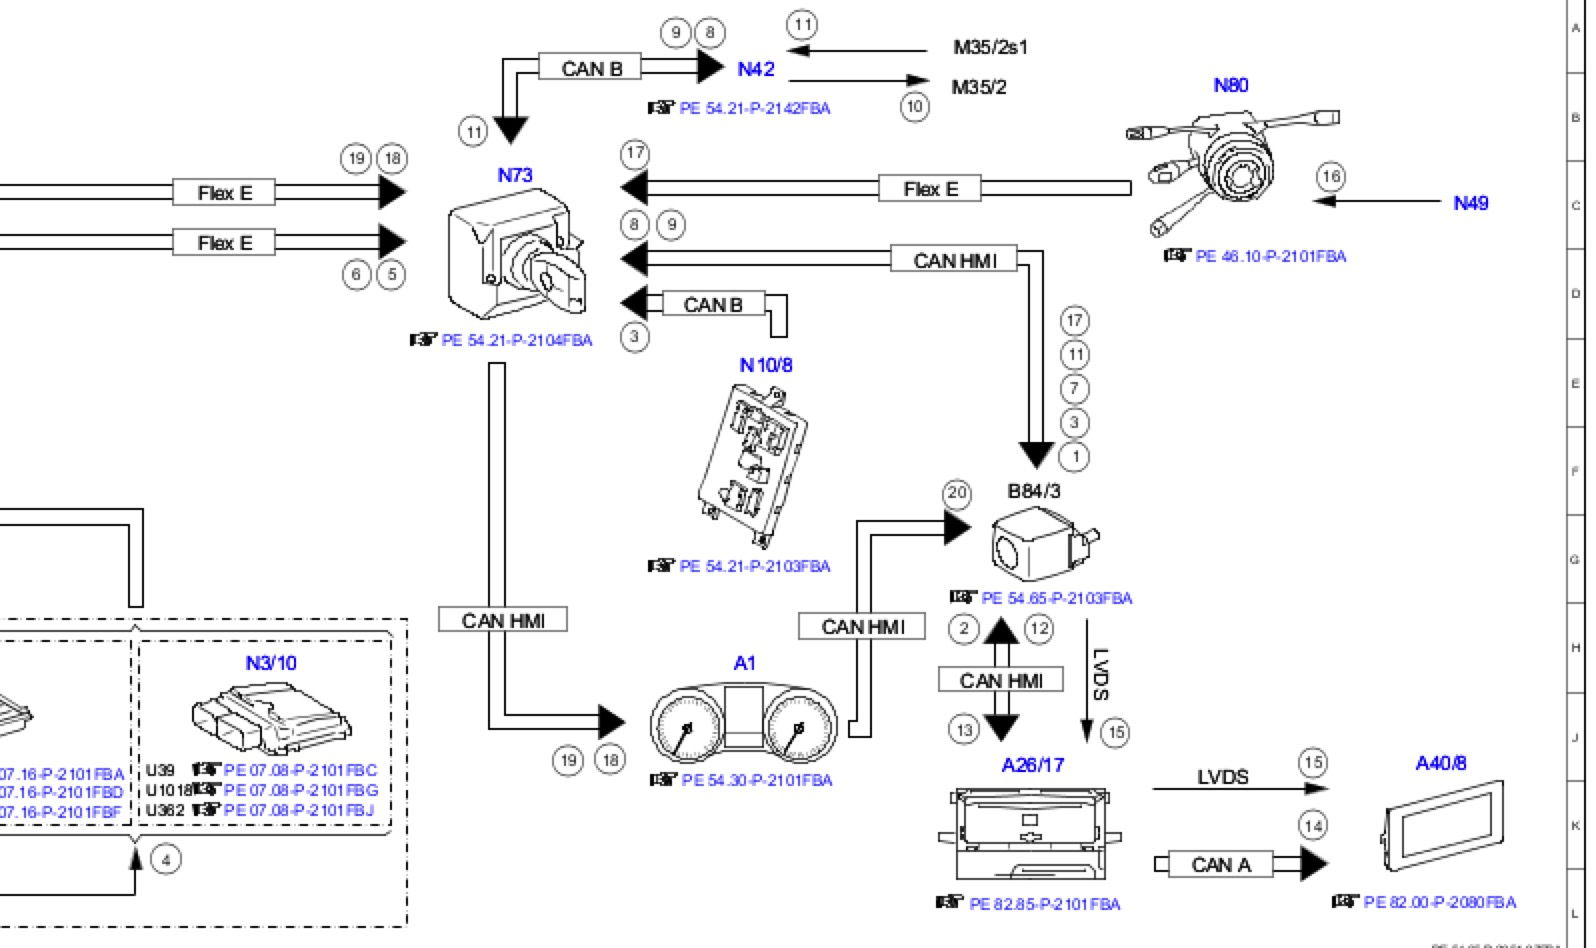 C Class W204 2008 2014 Fuse List Chart Box Location Layout Diagram likewise 2003 Land Rover Discovery Engine Diagram furthermore 1998 Mitsubishi Galant Engine Diagram besides Eagle Summit Parts furthermore 3wklp 1979 Vw Super Beetle Just Purchased Fuel Pump Runs. on mercedes benz fuse box diagram